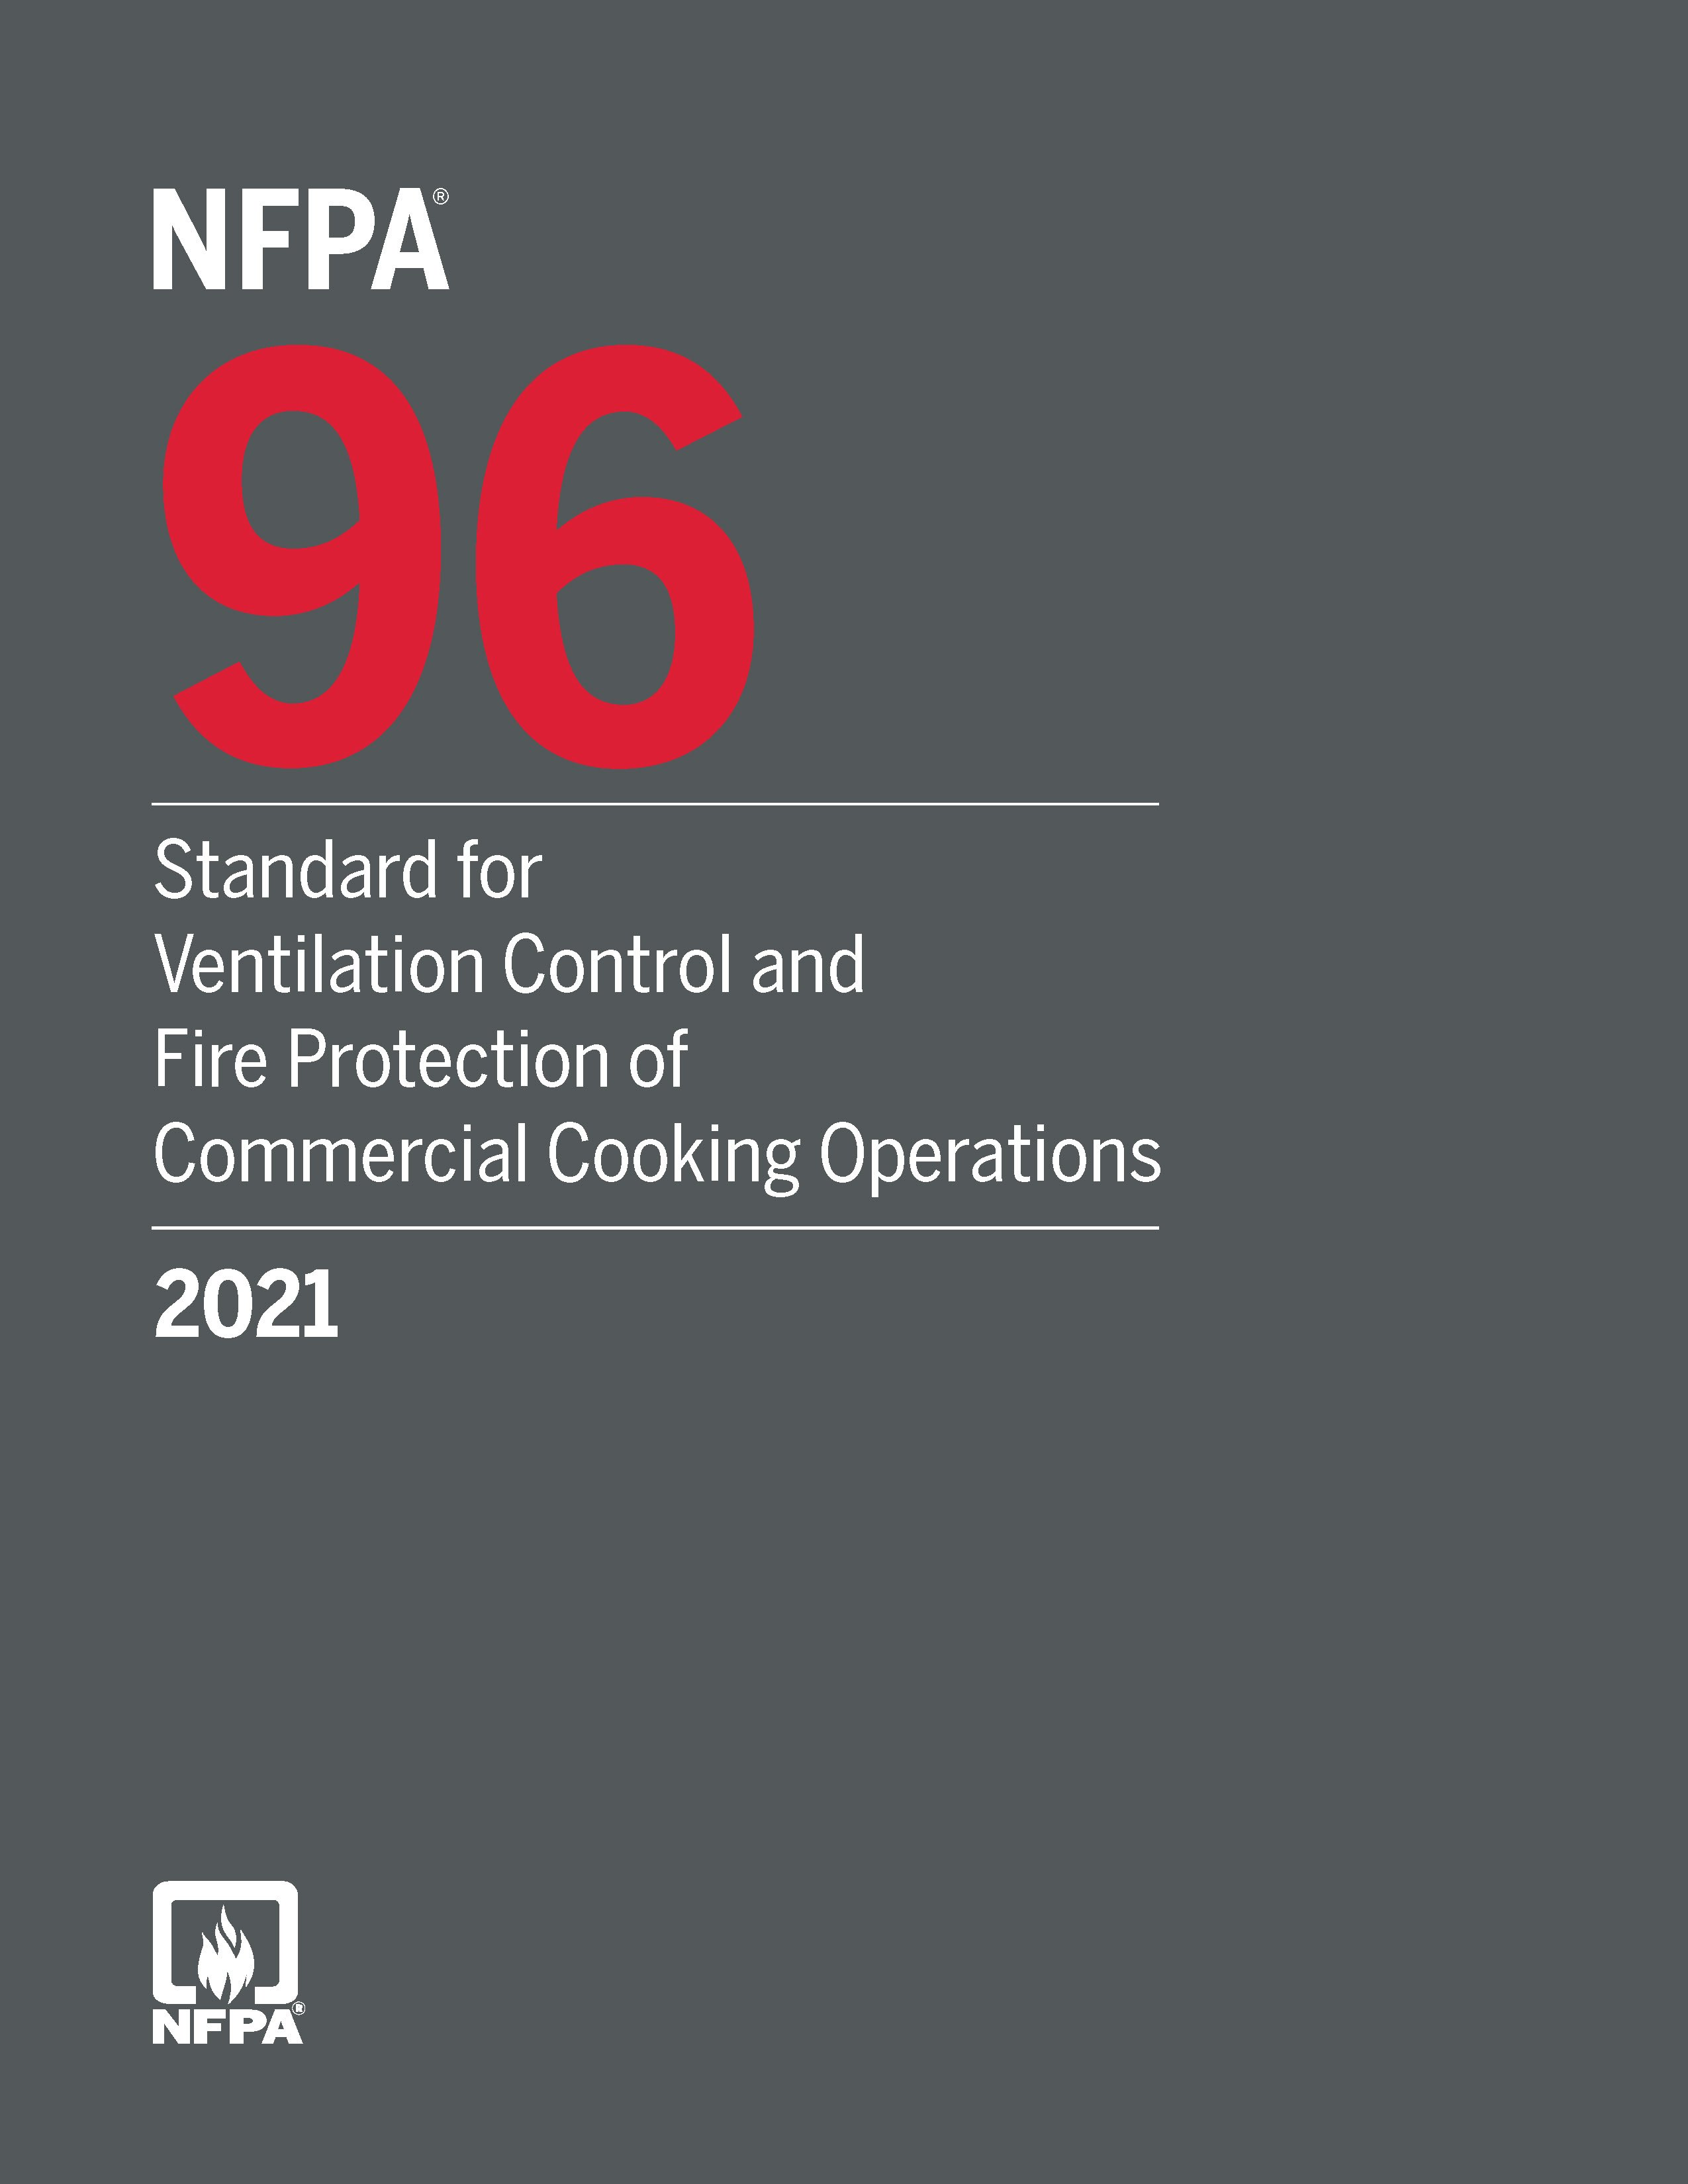 2021 NFPA 96 Standard for Ventilation Control and Fire Protection of Commercial Cooking Operations